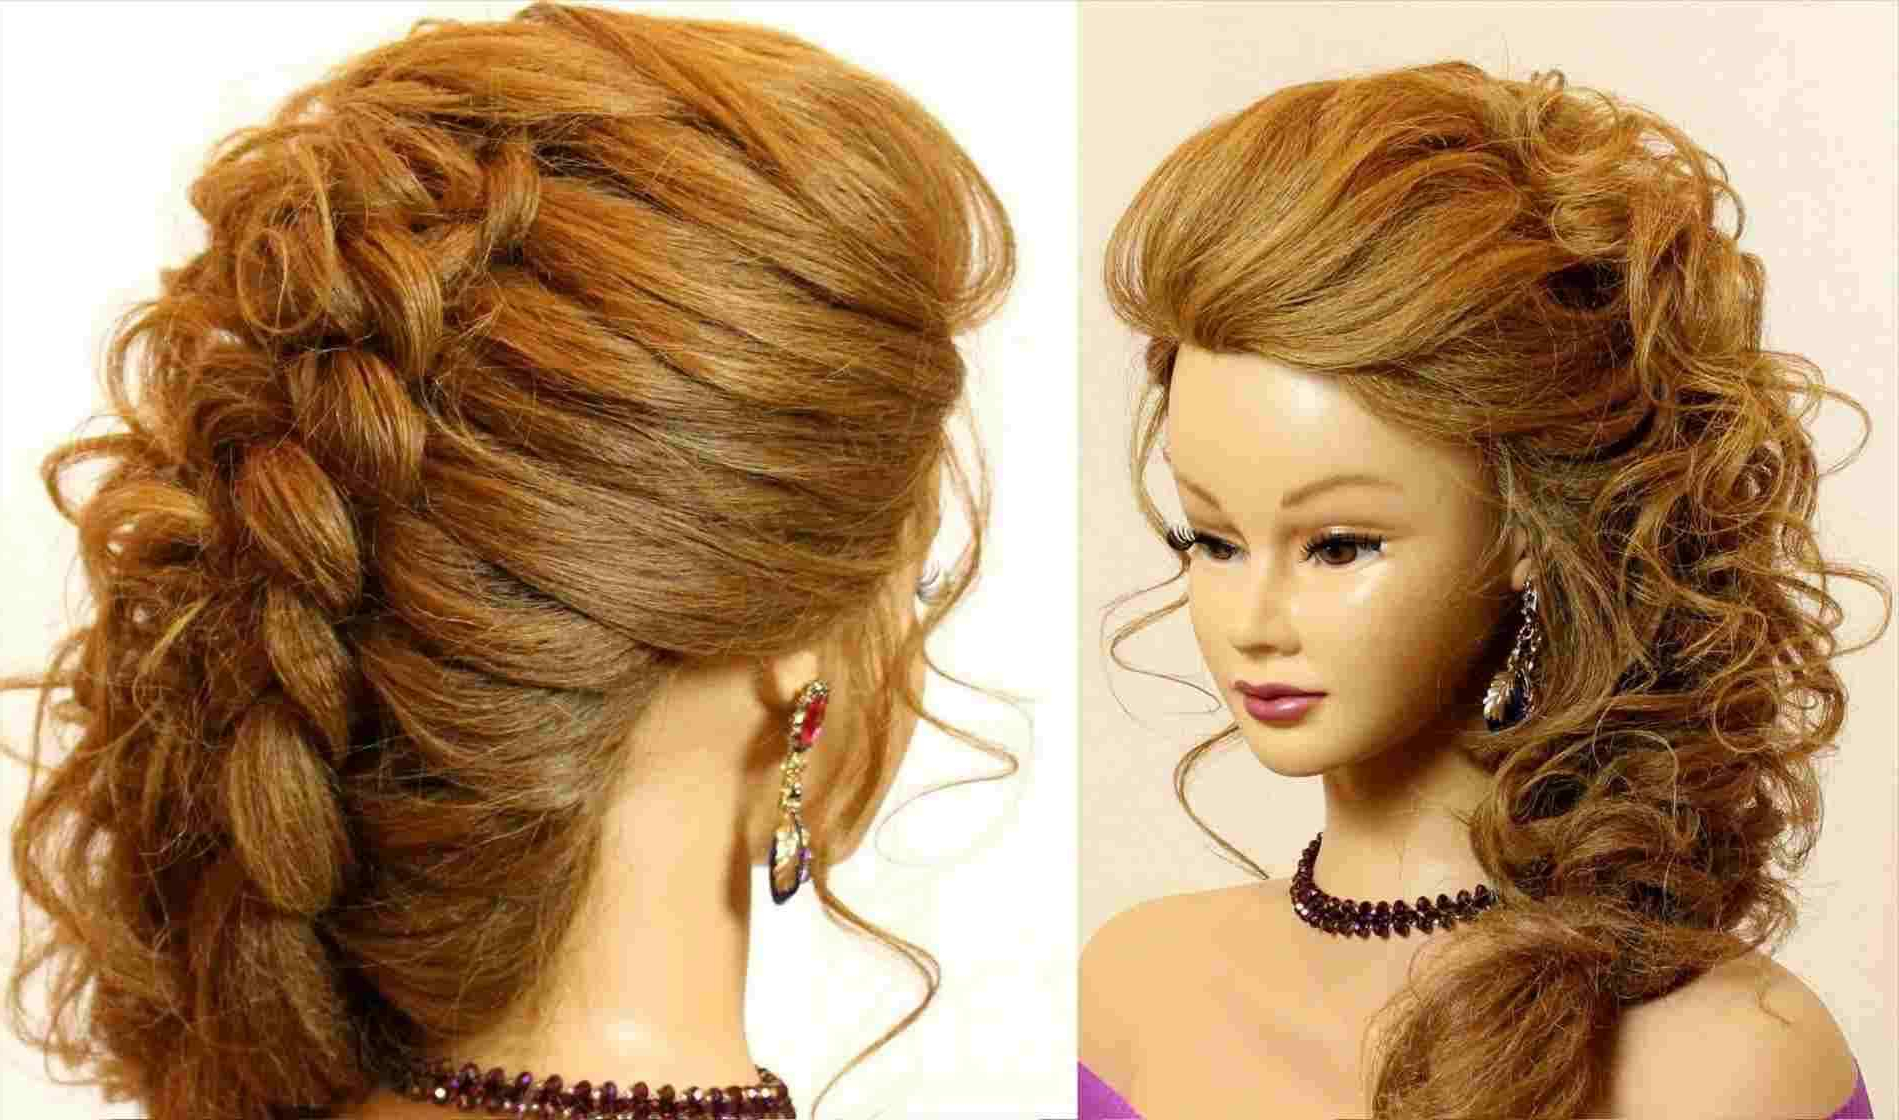 Hairstyles For Long Hair Wedding Guest Curls Fresh Guest Different For Hairstyles For Short Hair Wedding Guest (View 22 of 25)